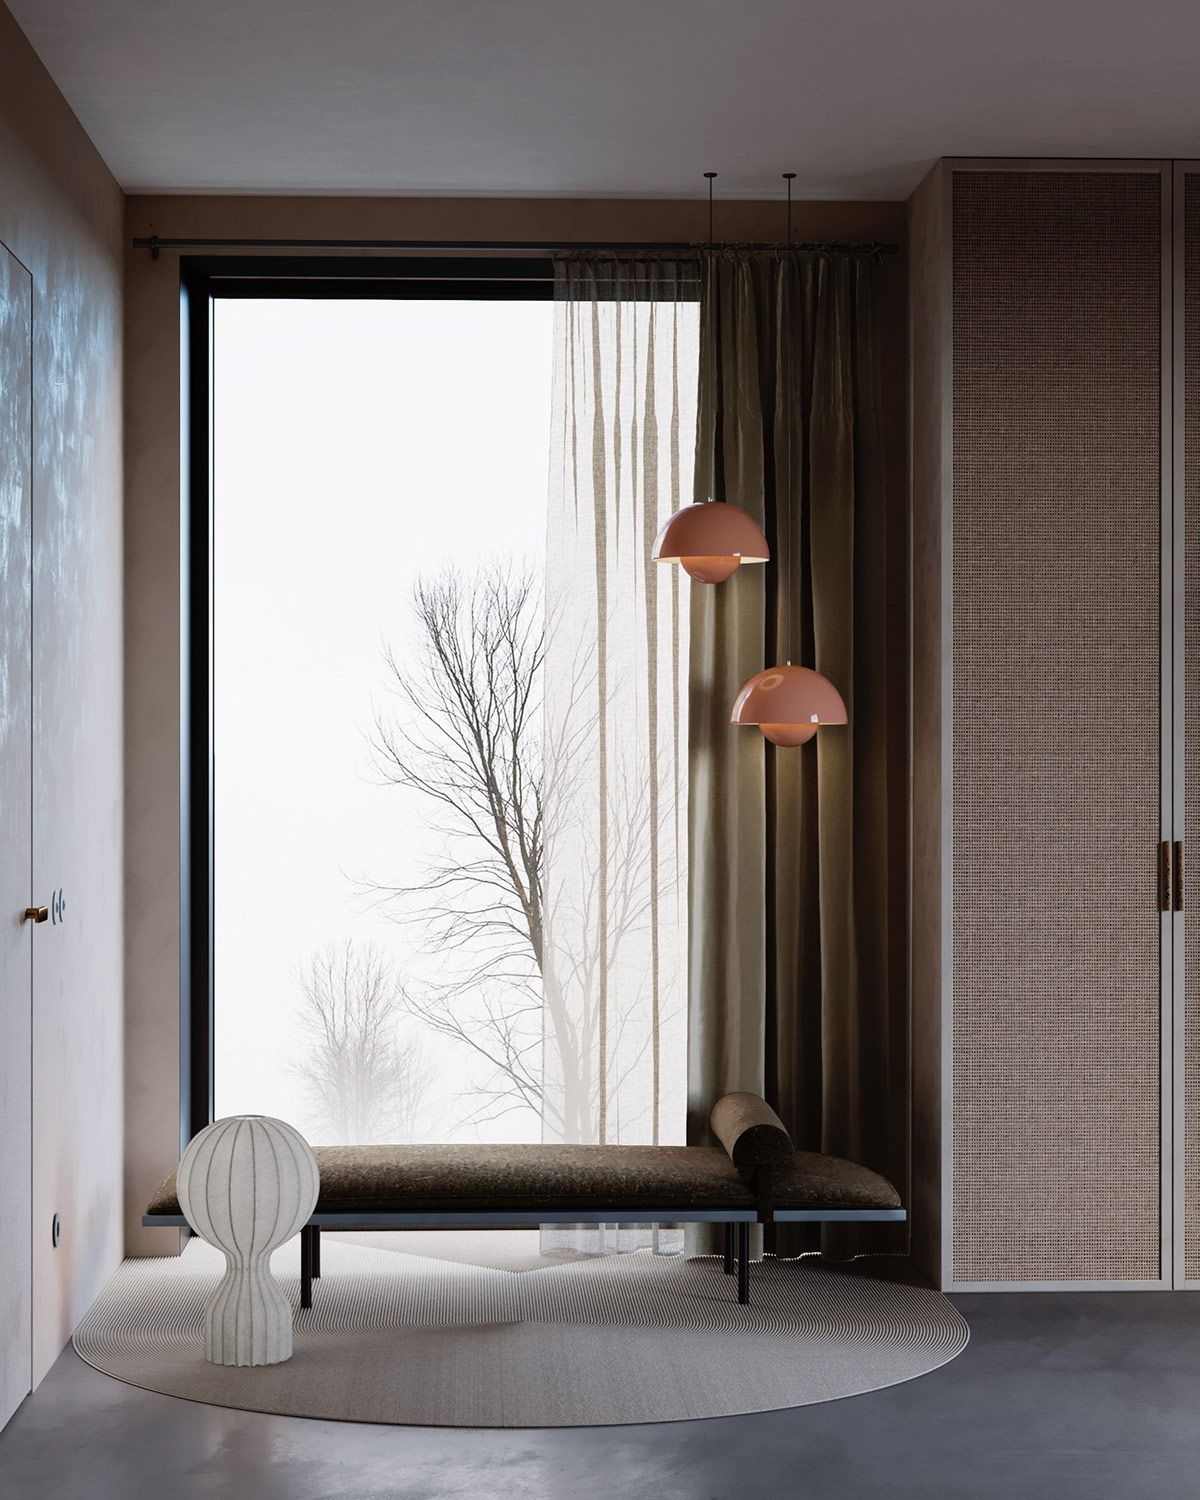 Kloos Wohndesign By Nature: Be Inspired By The Best Interior Design #interieurdesign